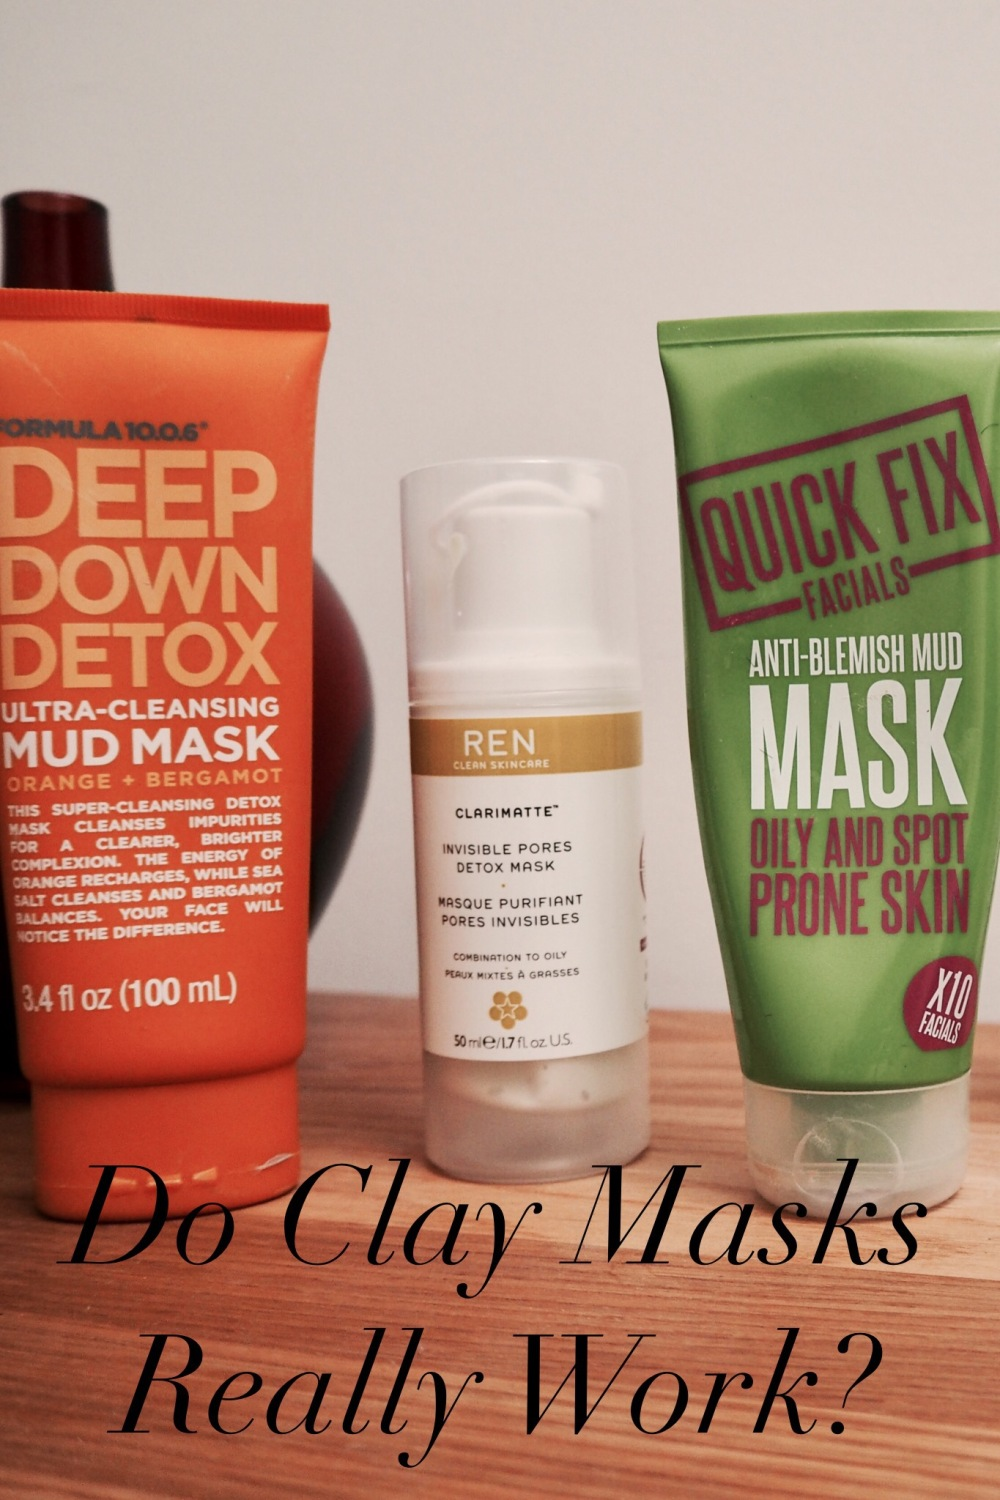 Do Clay Masks Really Work? Row of tubes of mask